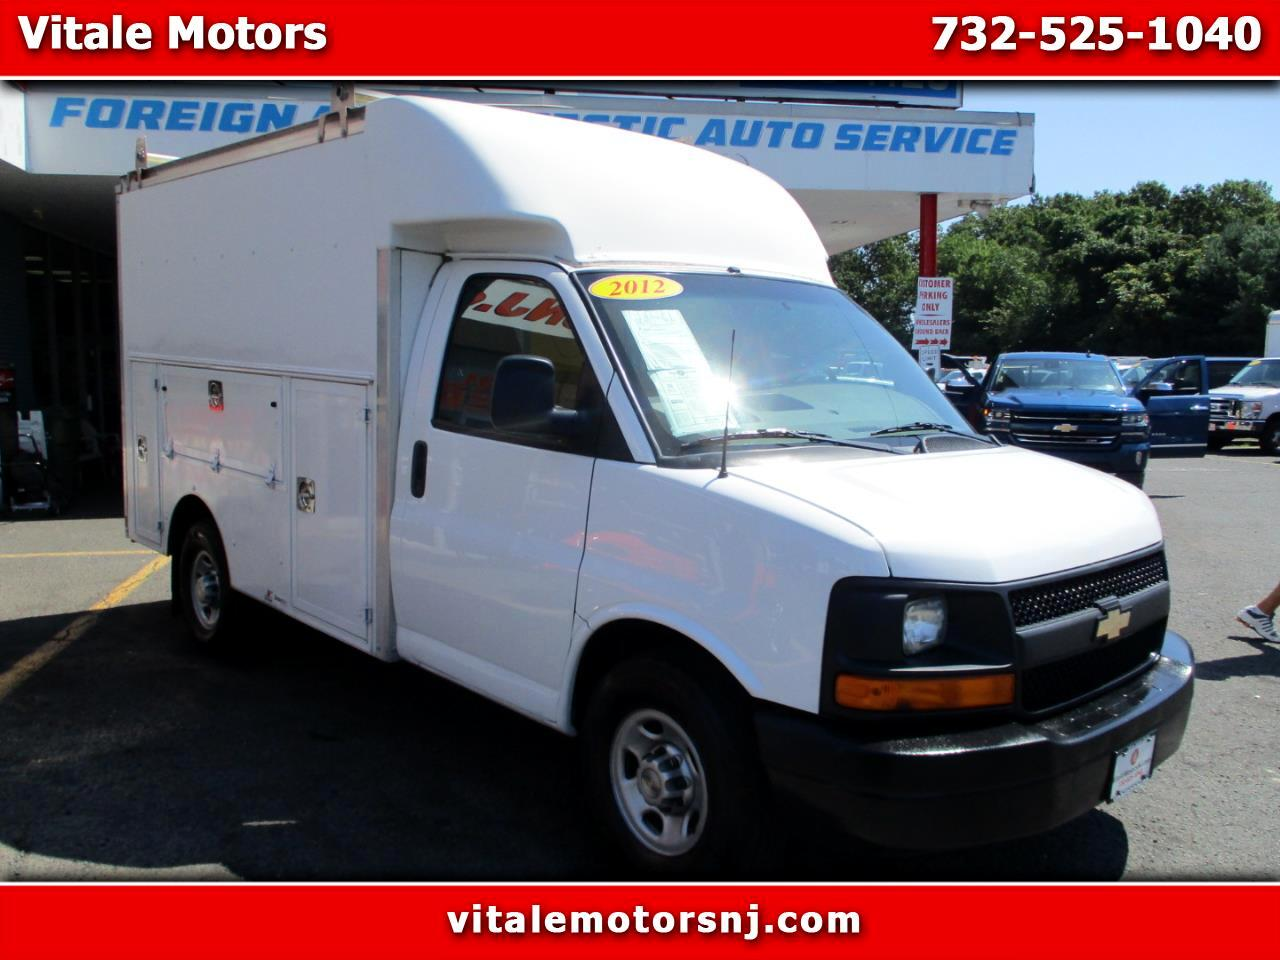 2012 Chevrolet Express G3500 10 FOOT UTILITY BOX TRUCK